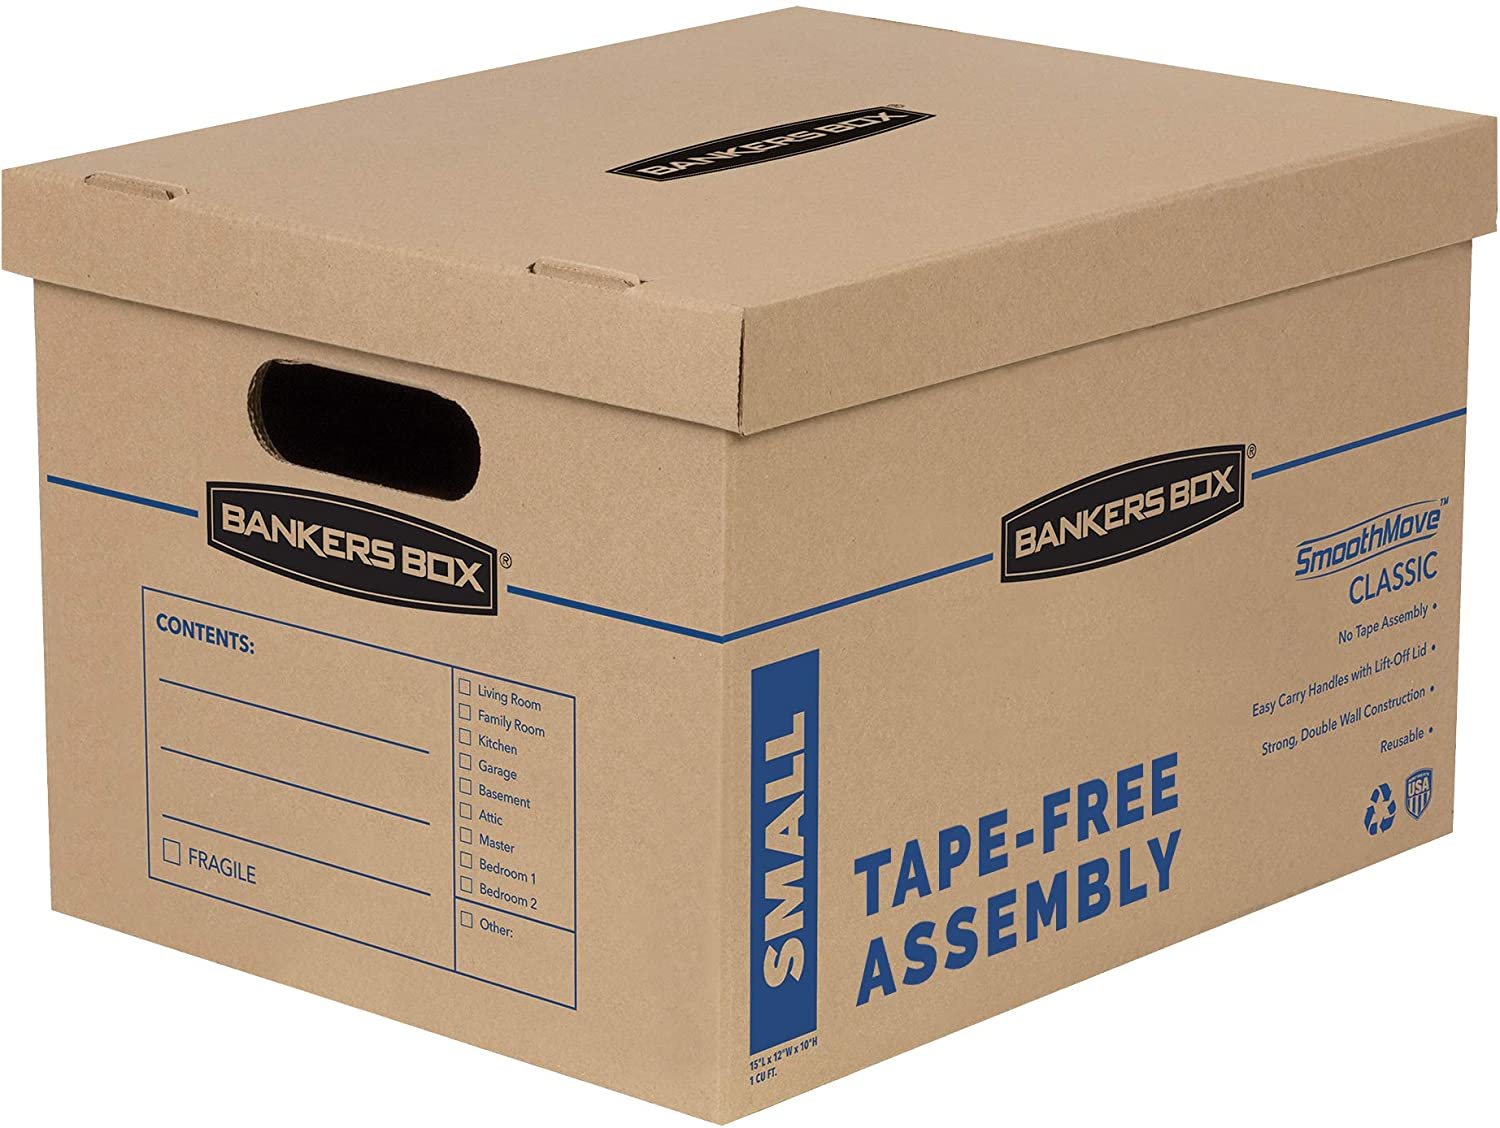 Bankers Box SmoothMove Classic Moving Boxes, Tape-Free Assembly, Easy Carry Handles, Small, 15 x 12 x 10 Inches, (7714901): Office Products